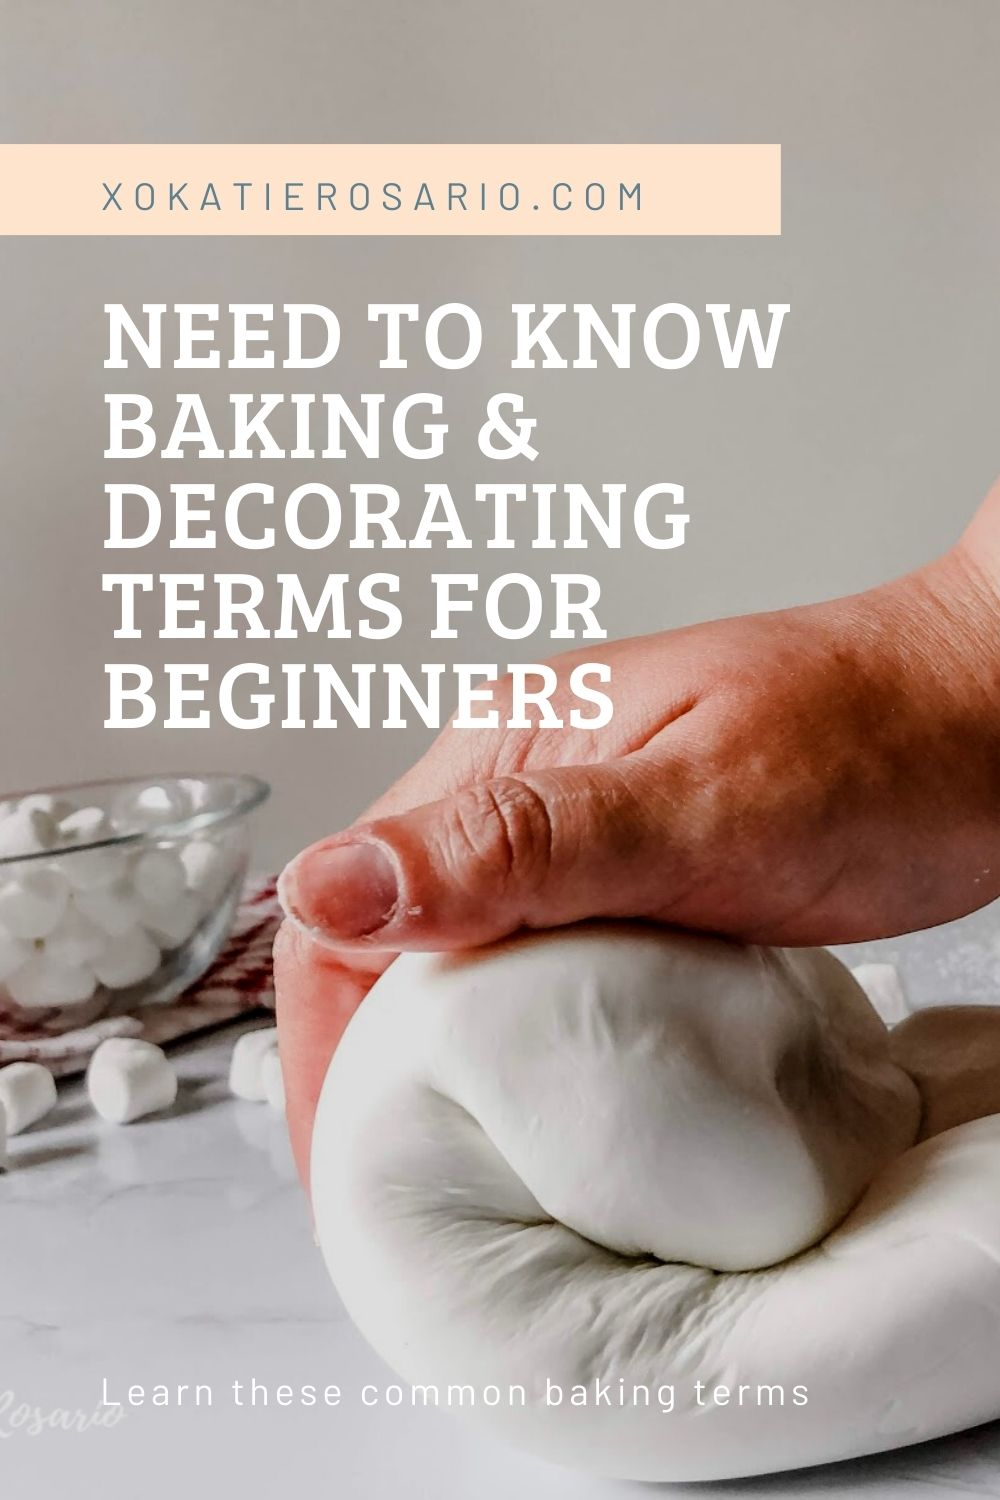 As a beginner baker, it's easy to get frustrated by all the terms, jargon, or phrases used in recipes and tutorials. Today we'll go over baking and cake decorating terms that you should know before starting. Created by Katie Rosario, XOKatieRosario creates beautiful cake decorating techniques that are easy for beginners and strategically designed for any home baker. #xokatierosario.com #cakedecoratingcourse #xokatierosario #katierosariocakes #cakedecoratingtips #beginnerbaker #bakingterms